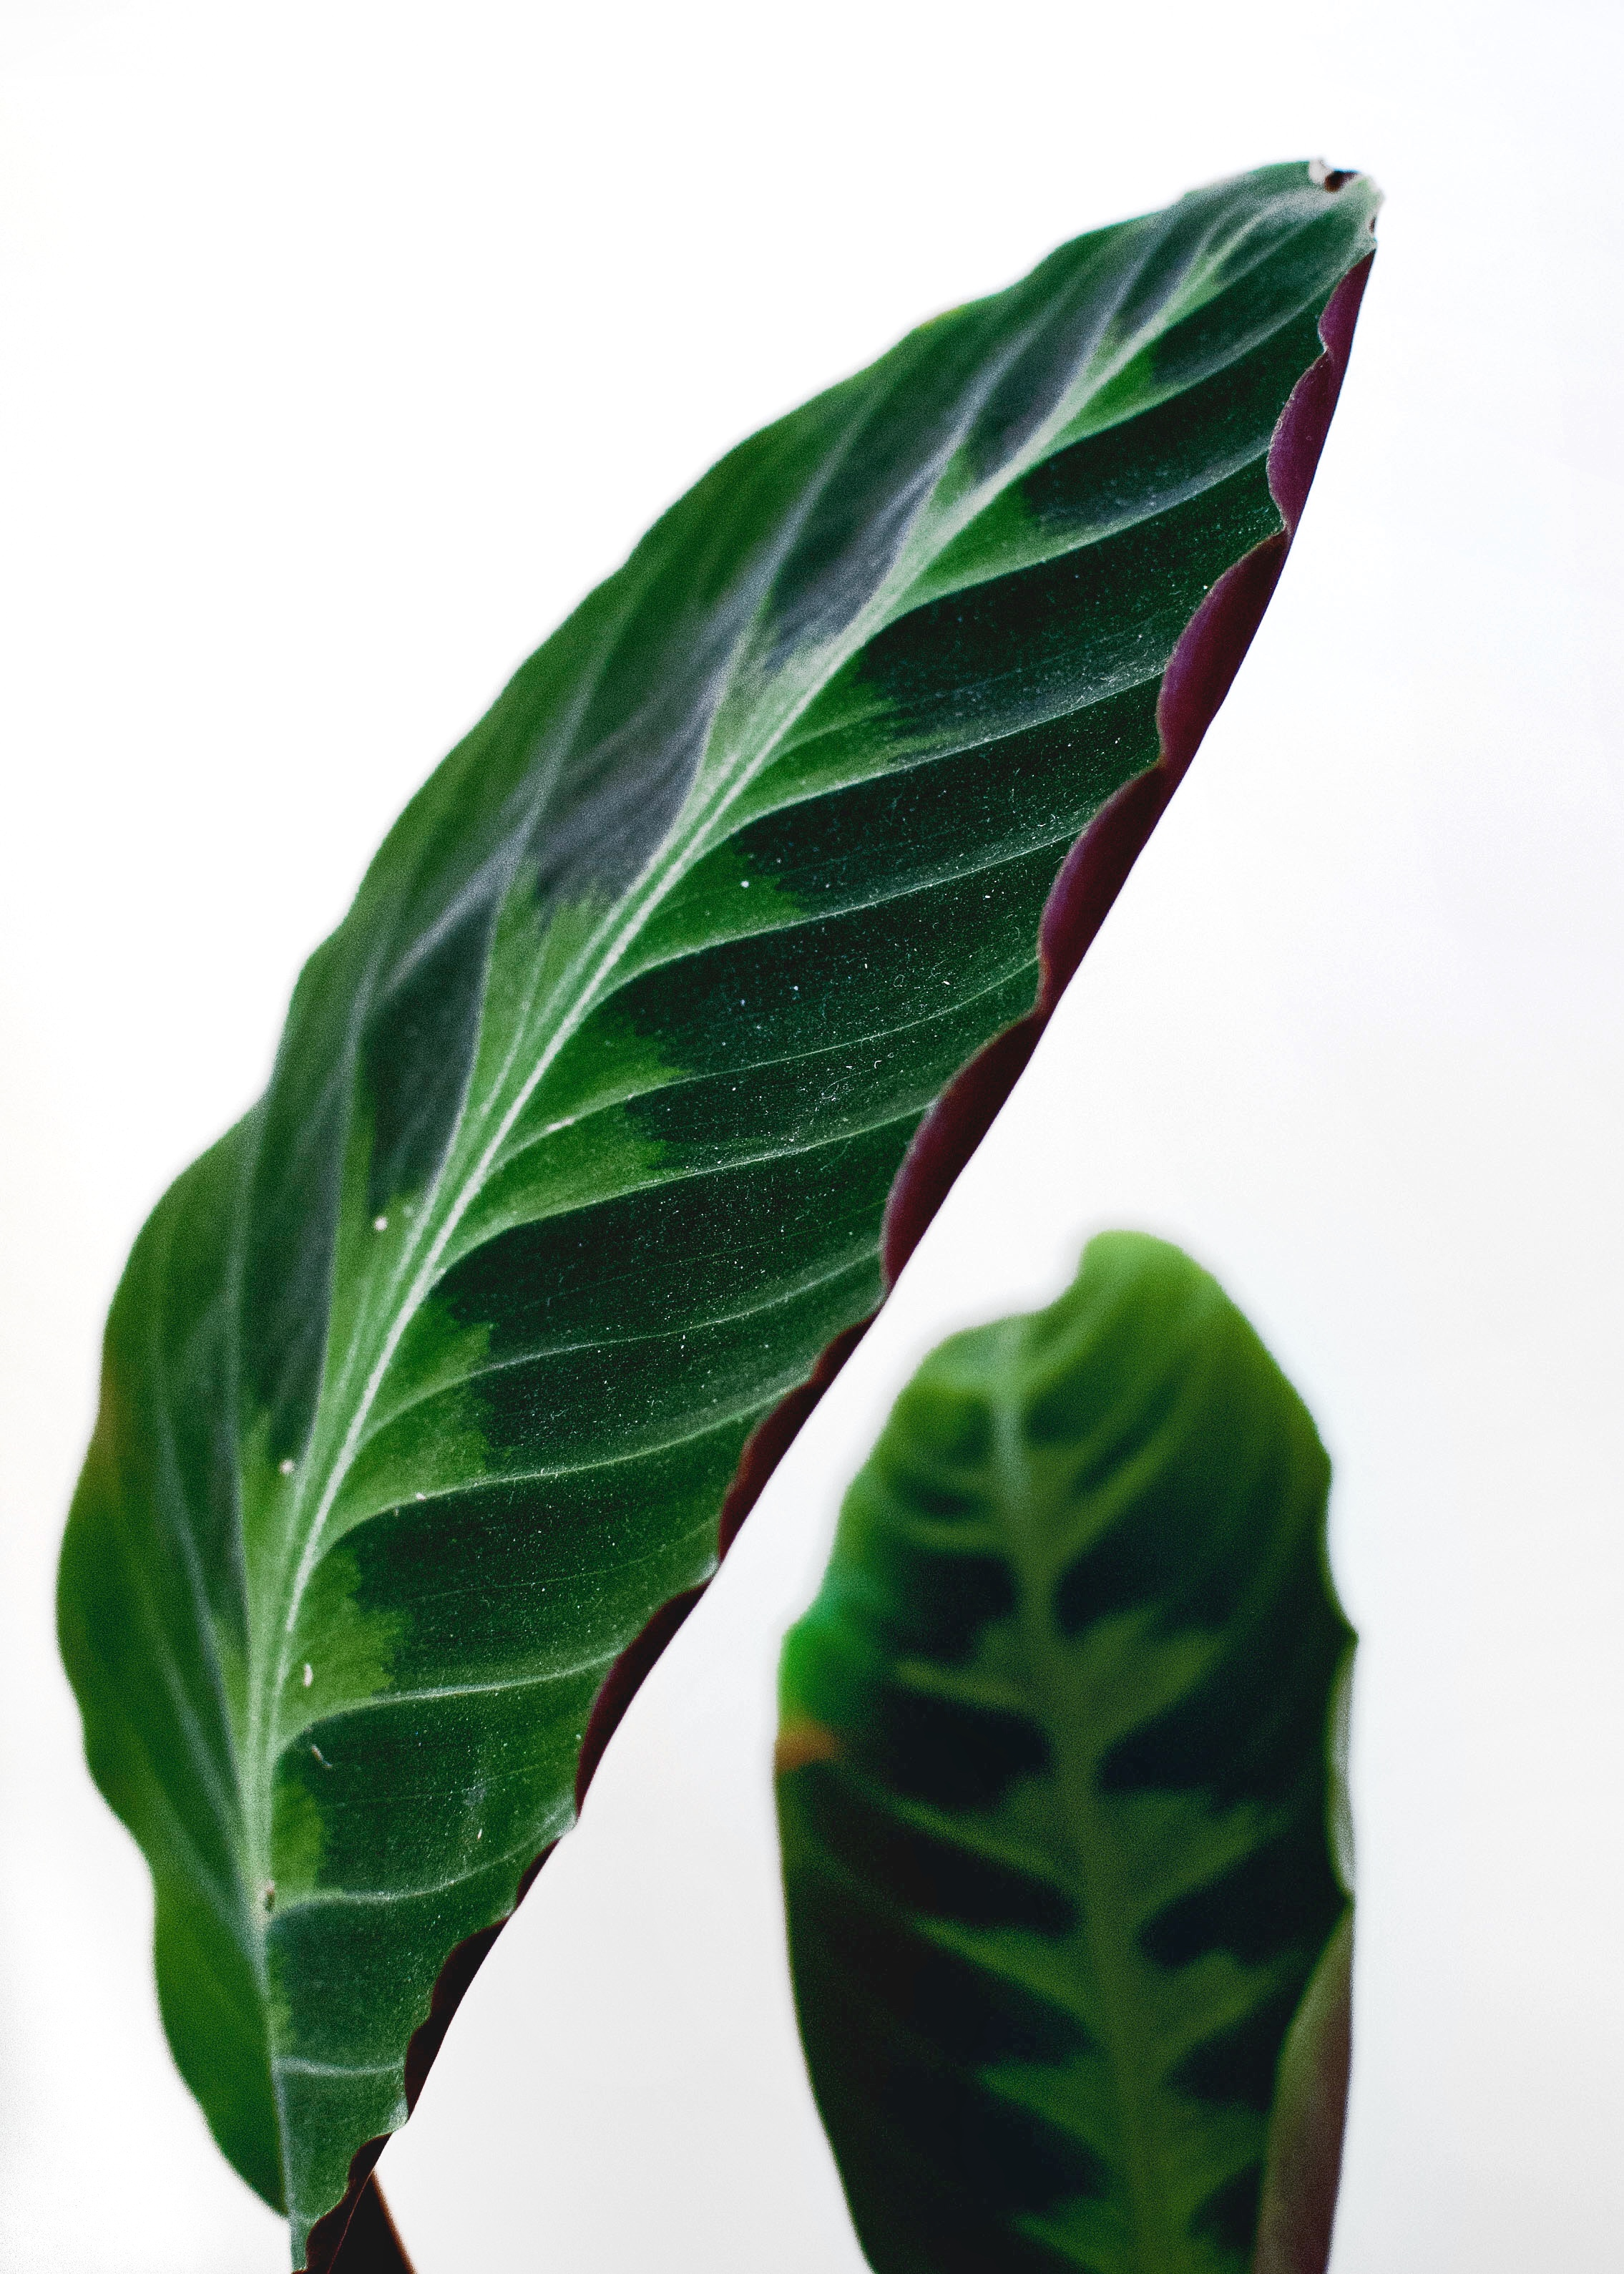 Calathea warscewiczii  (Velvet Calathea) I love those purple ruffled leaf margins.